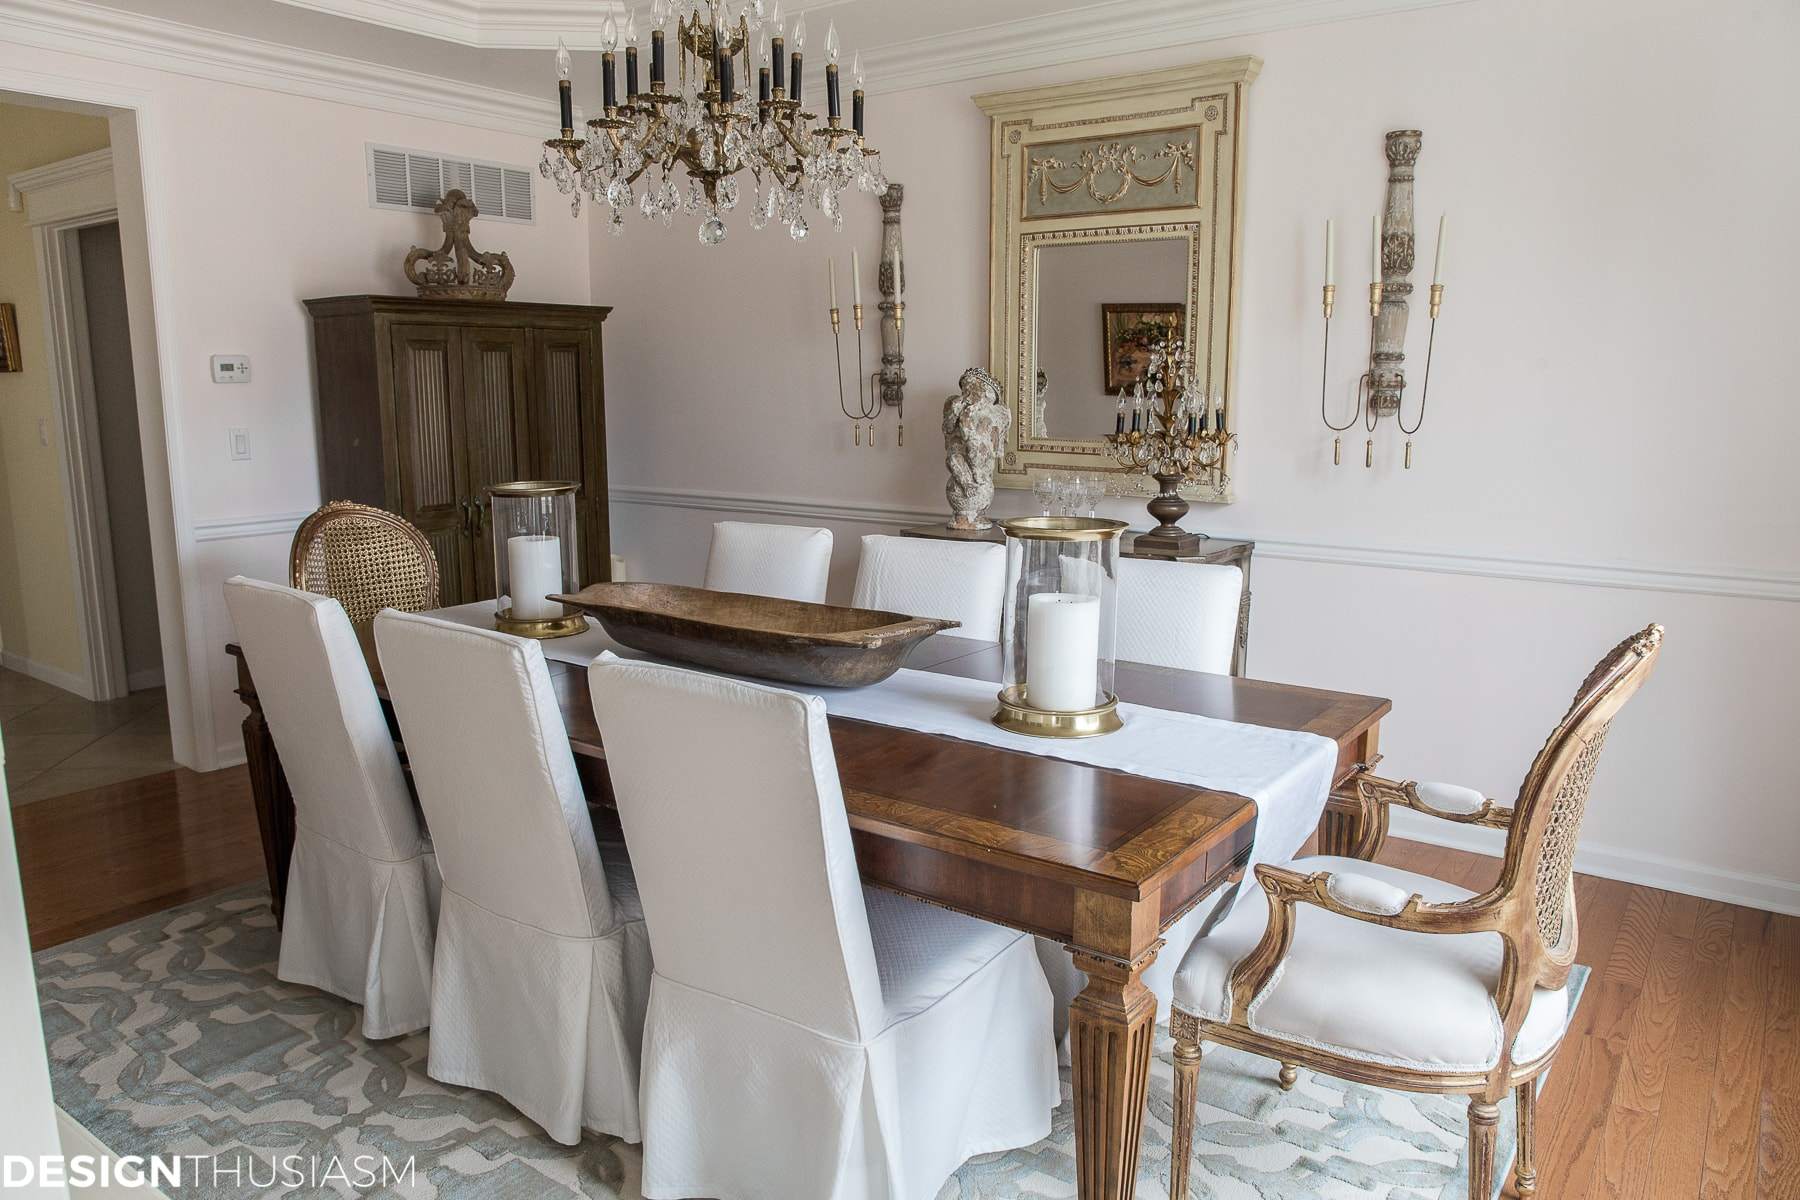 Sensational How I Transformed My Dining Room Without Replacing The Furniture Interior Design Ideas Truasarkarijobsexamcom